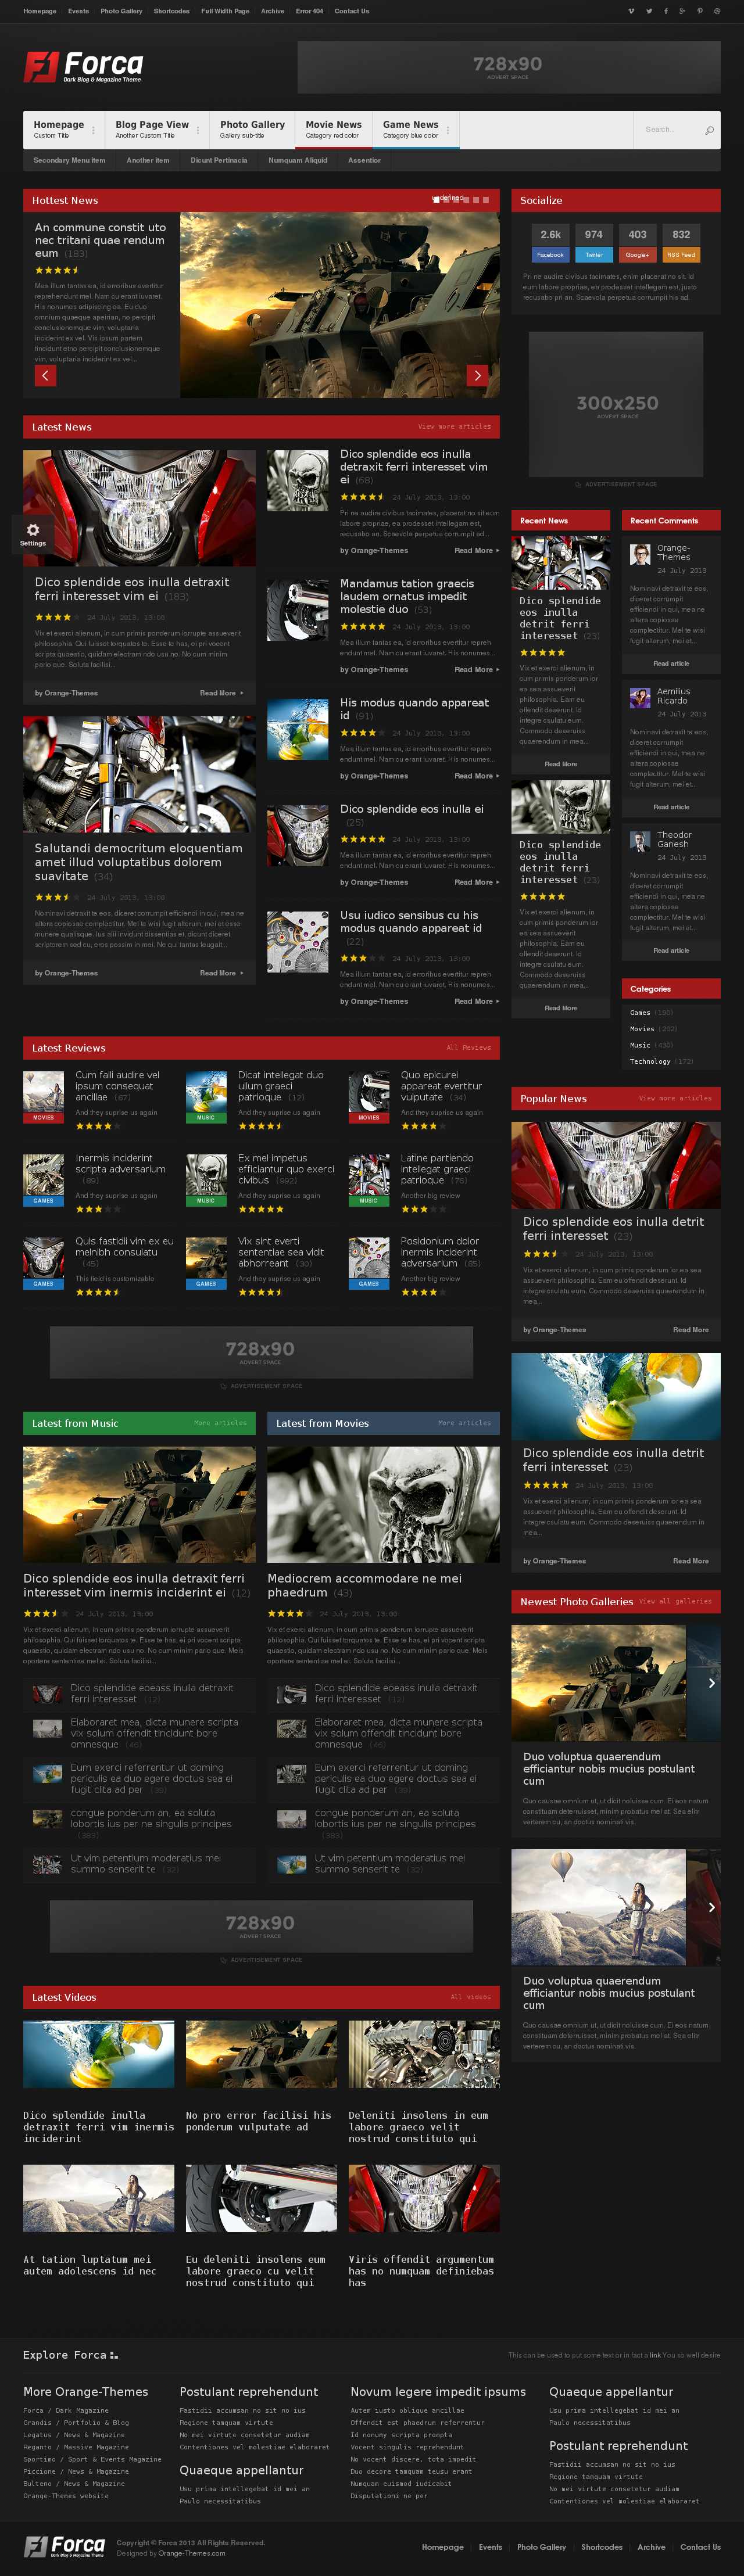 Forca - Responsive News-Magazine HTML Template